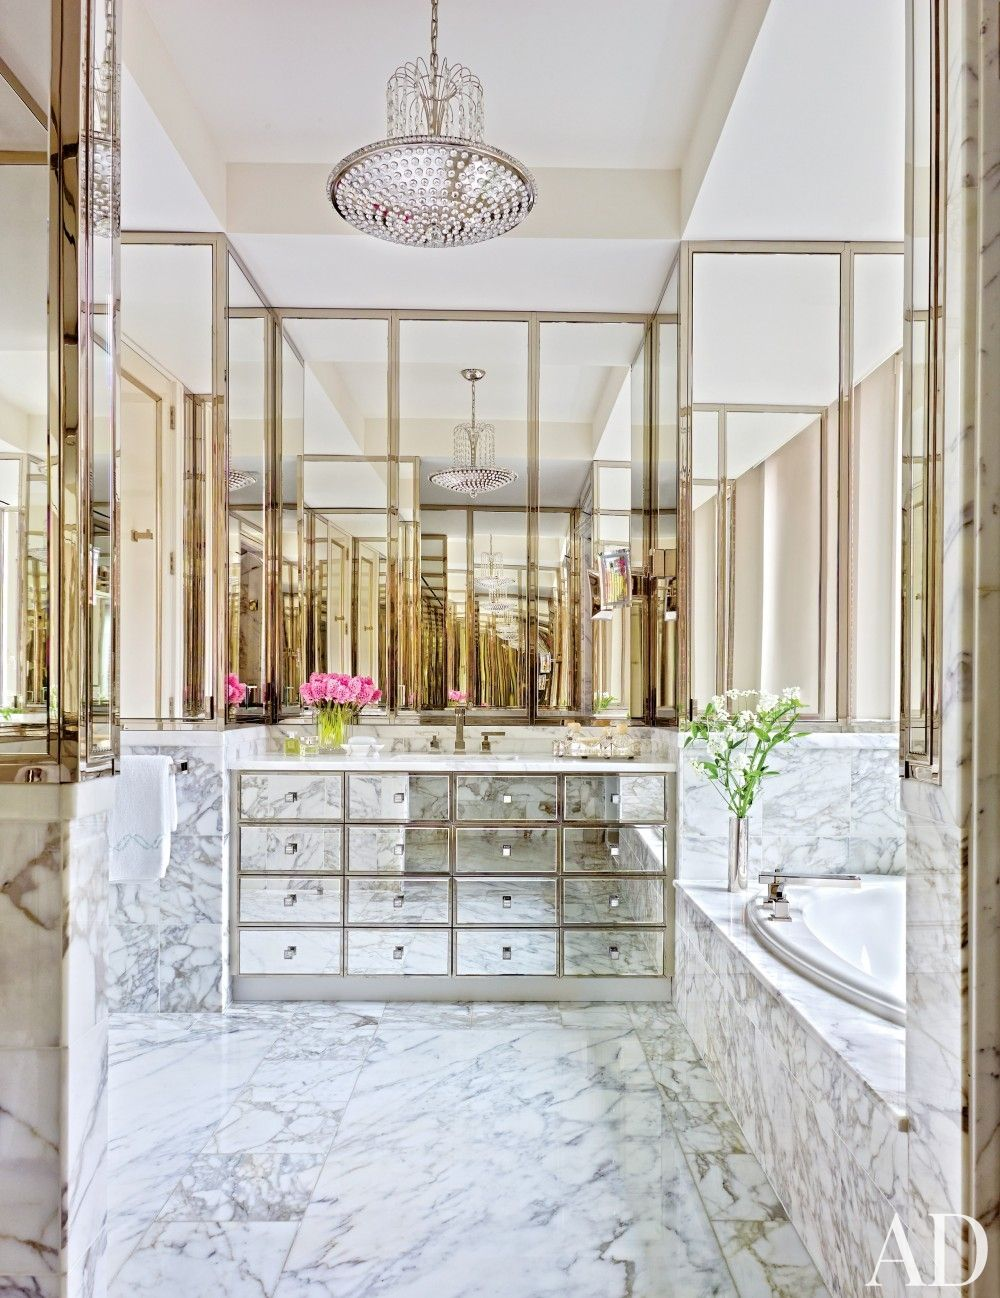 See how to create an eye-catching room with glimmering mirror-clad walls